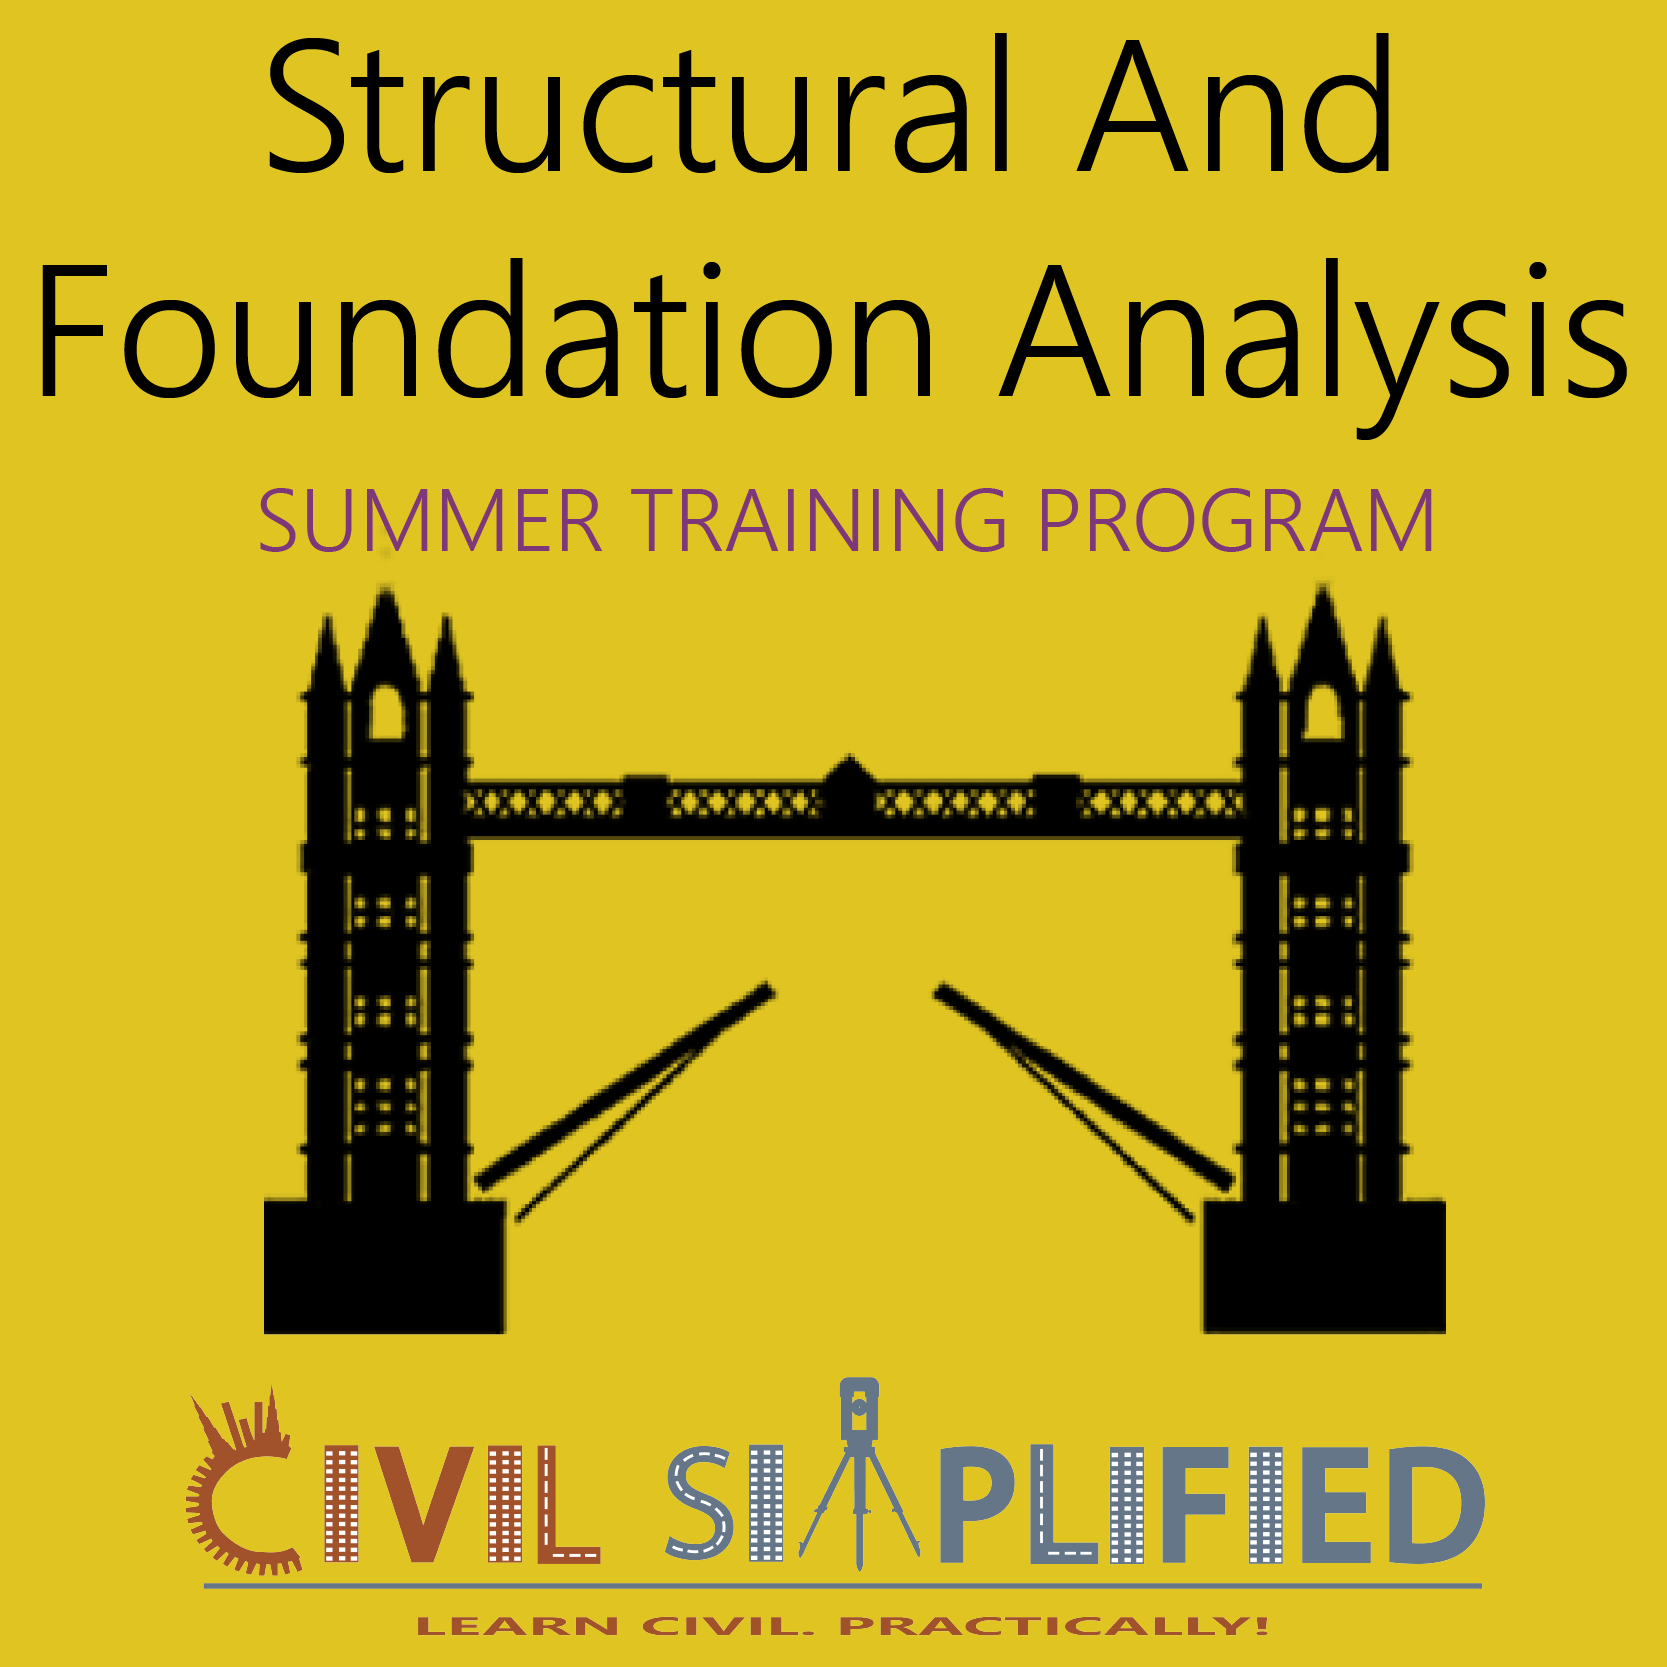 Summer Training Program in Civil Engineering - Structural and Foundation Analysis in Mumbai